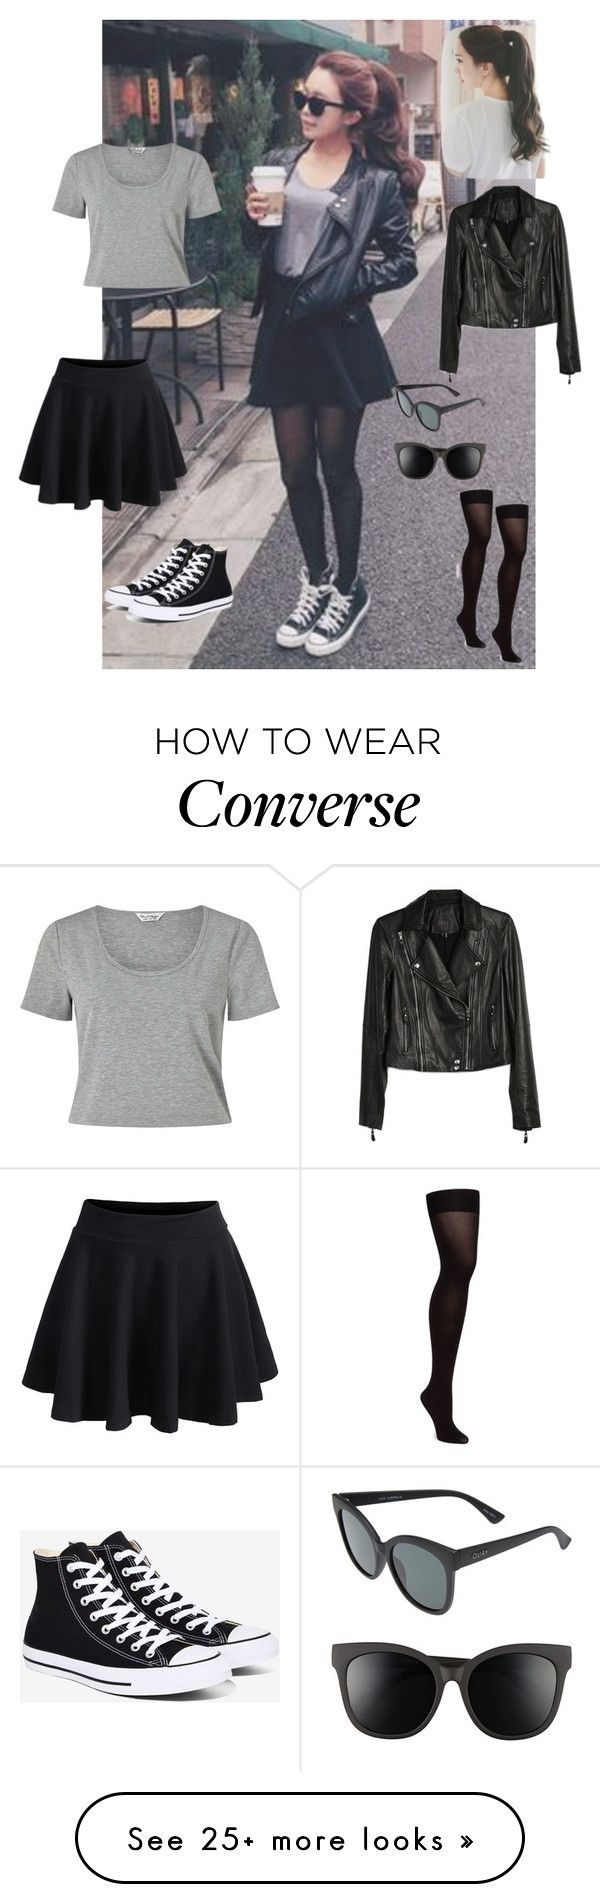 """Untitled #92"" by lalittaaristha on Polyvore featuring Hunter, Miss Selfridge, WithChic, Paige Denim, Converse, Quay and pinkage"